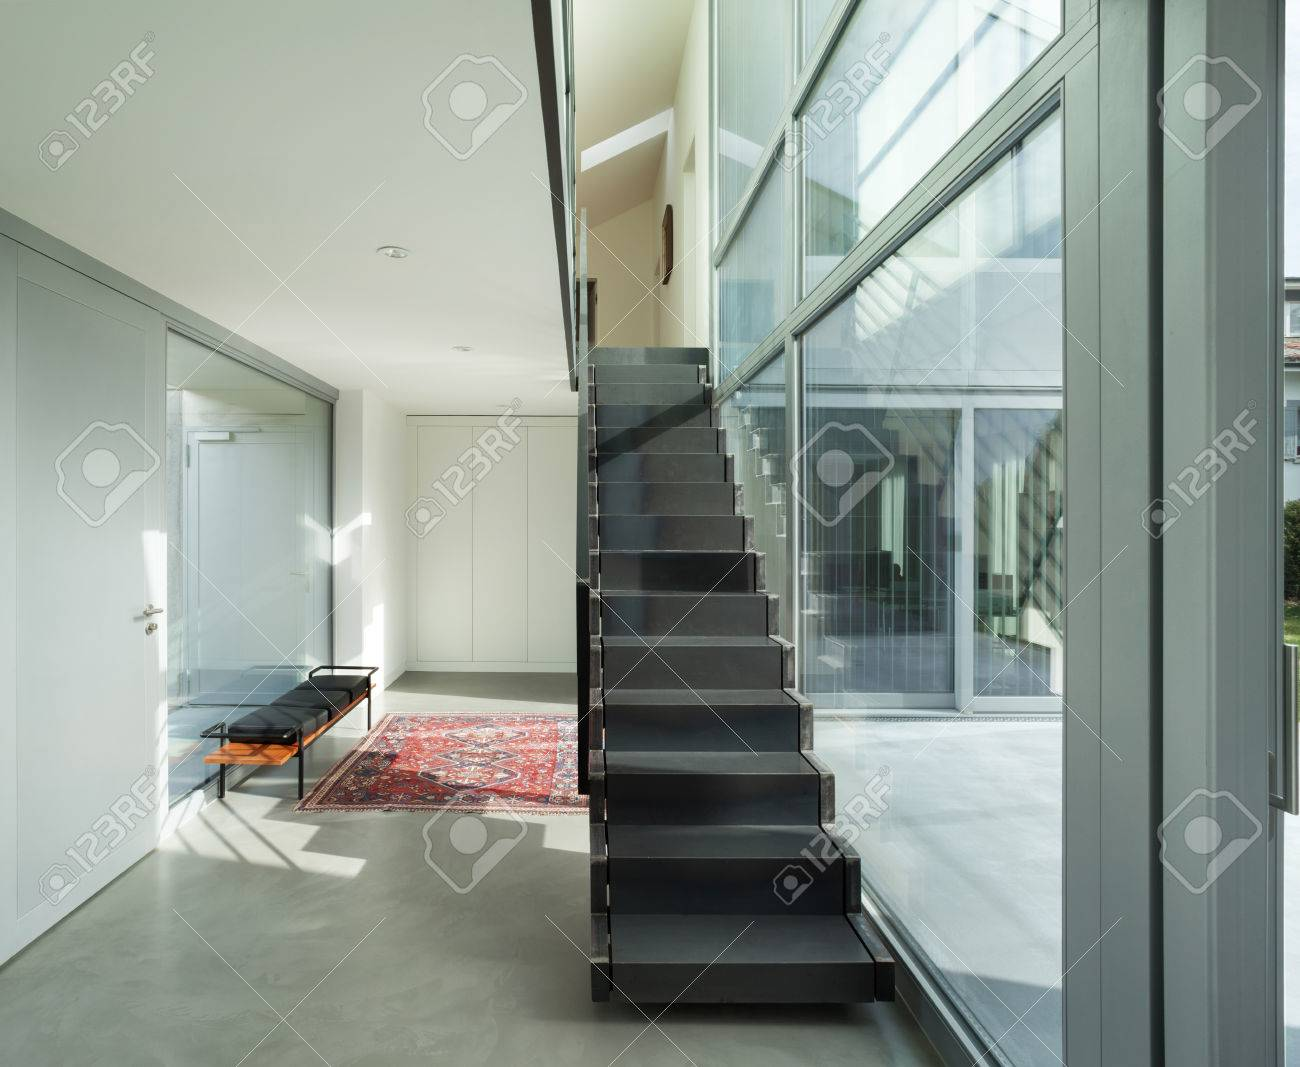 Interior of a modern house hall with iron staircase stock photo 56030500